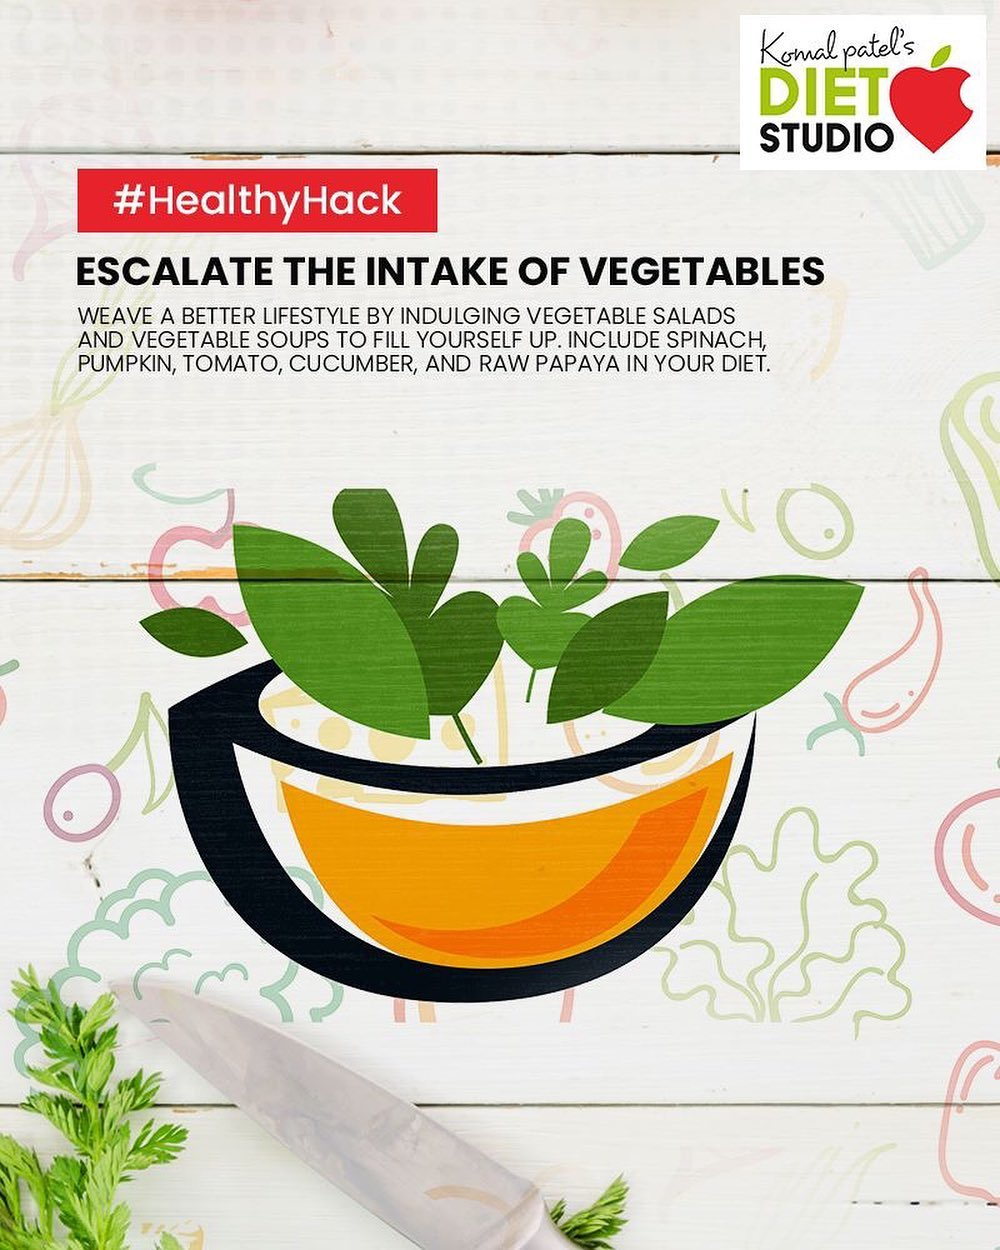 Include more vegetables. Weave a better lifestyle by indulging vegetable salads and vegetable soups to fill yourself up. Include spinach, pumpkin, tomato, cucumber, and raw papaya in your diet.  #HealthyHack #komalpatel #diet #goodfood #eathealthy #goodhealth